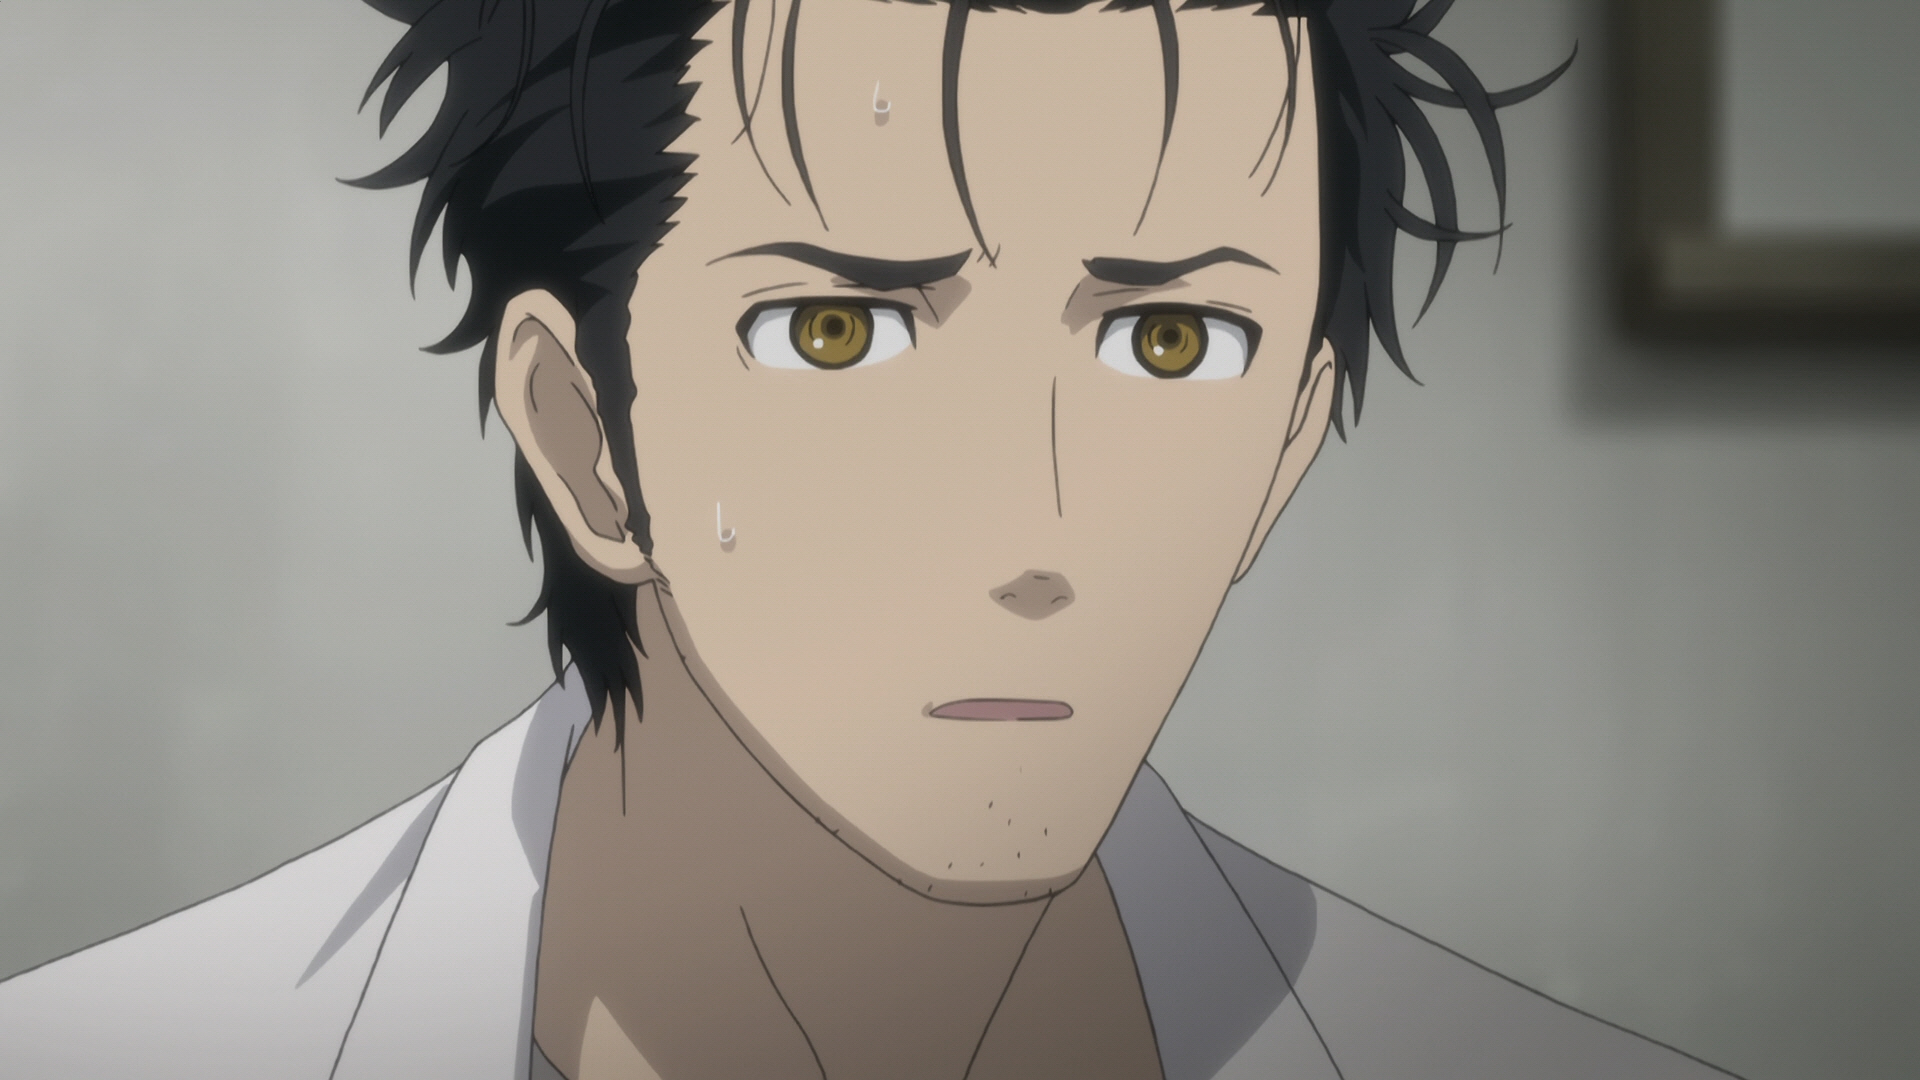 Steins Gate Episode 11 Dogma in Event Horizon 20